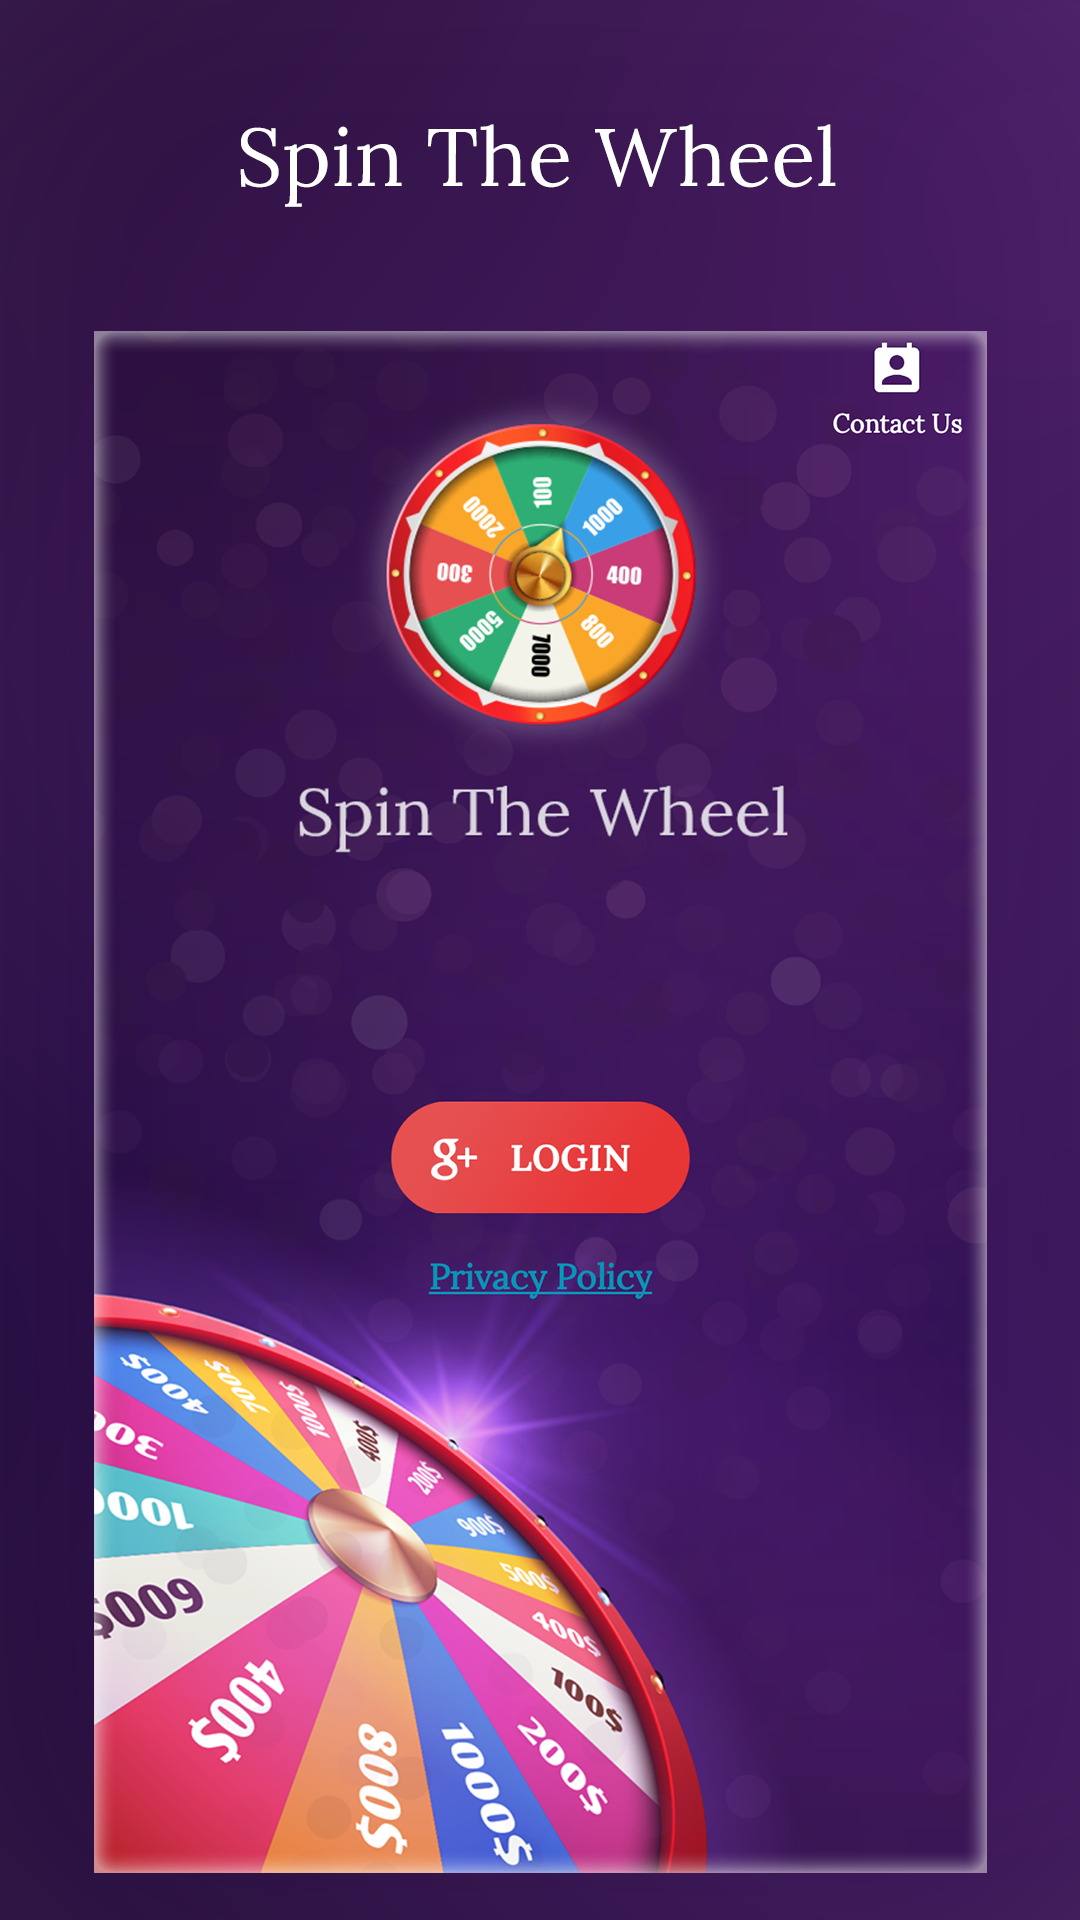 Spin the Wheel - Spin Game 2020